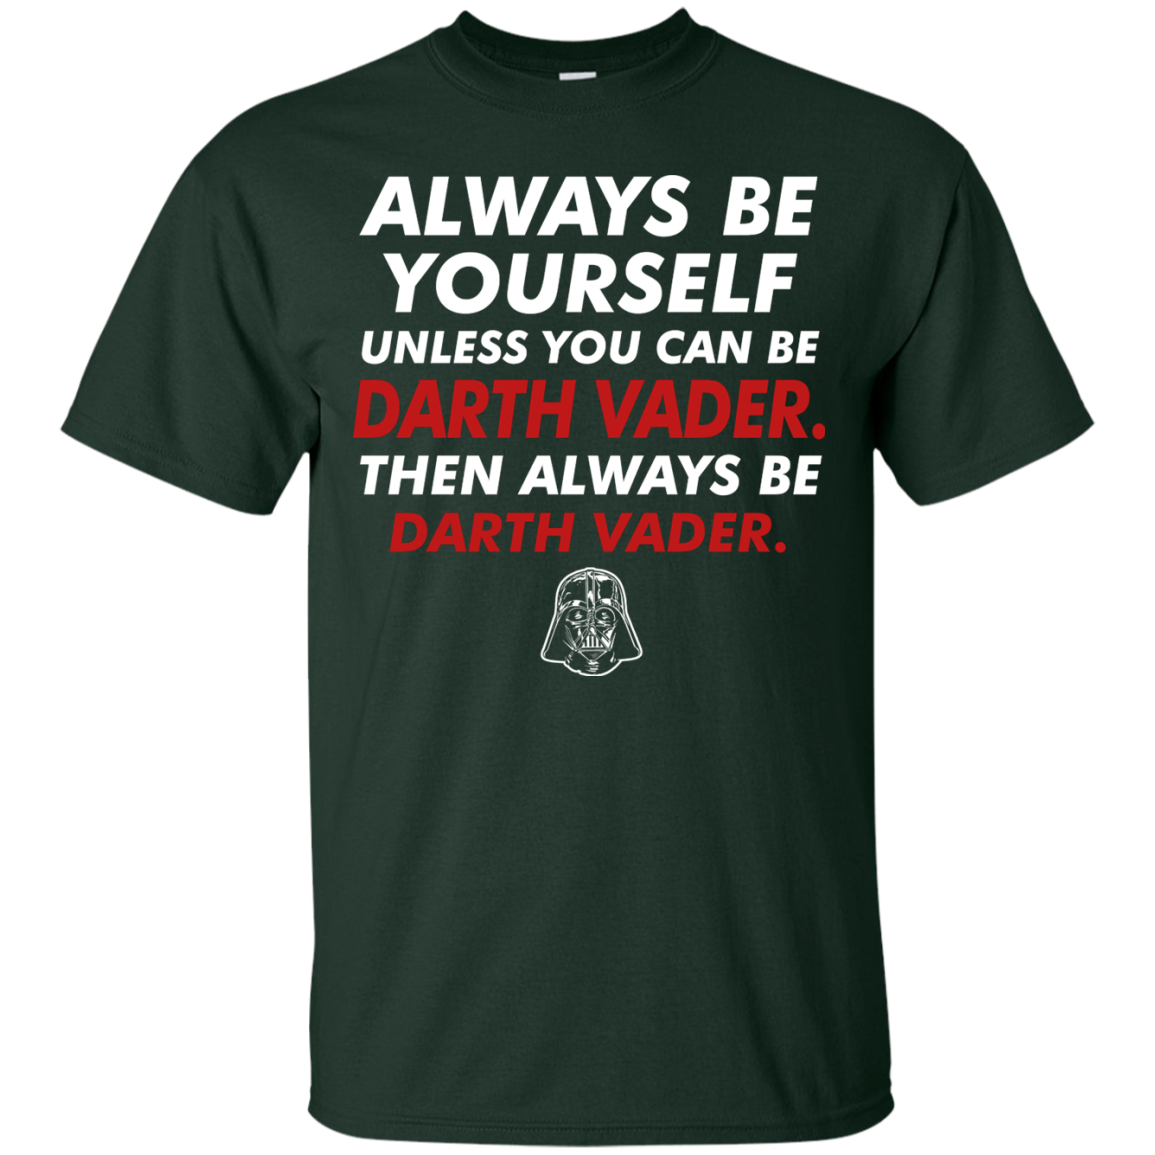 Always Be Darth Vader Star Wars Shop Gifts T Shirts Hoodies Sweatshirts Tank Top - The Sun Cat